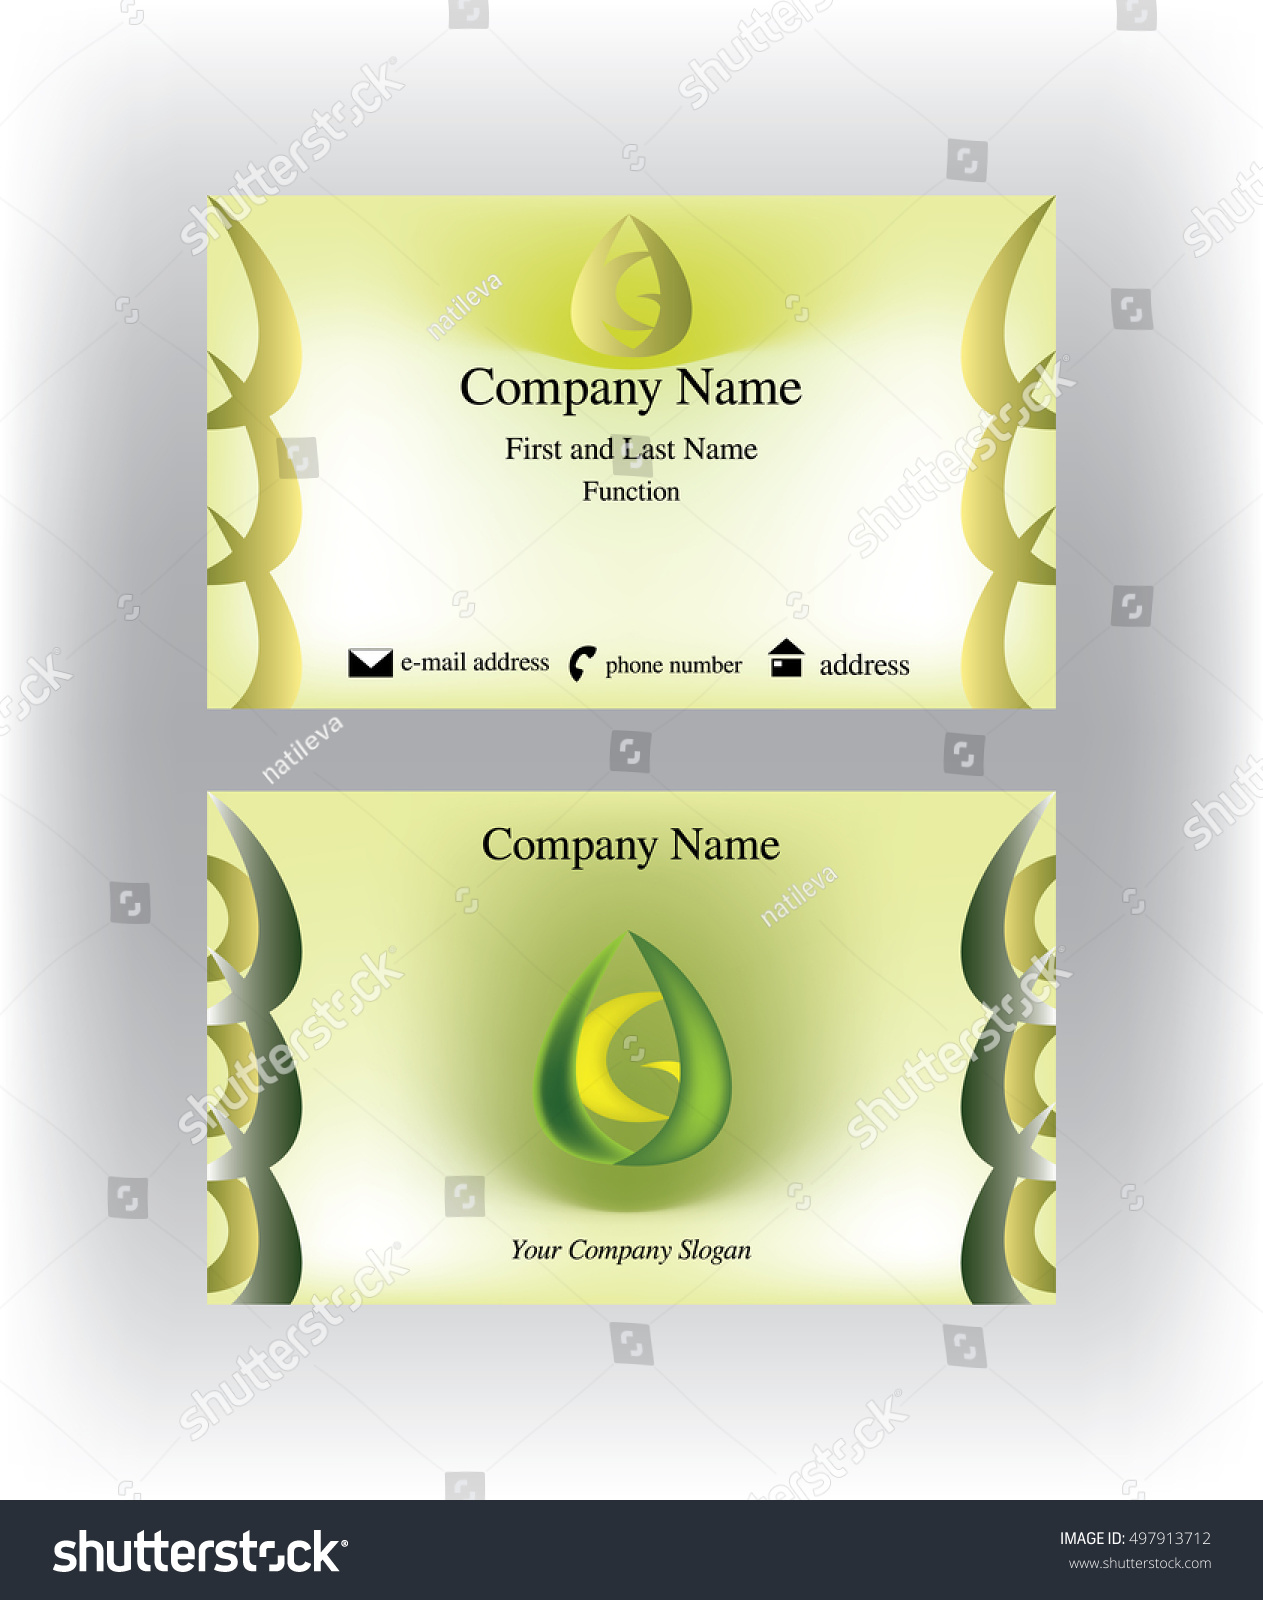 Business card g letter inside abstract stock vector 497913712 business card with g letter inside an abstract drop shape colourmoves